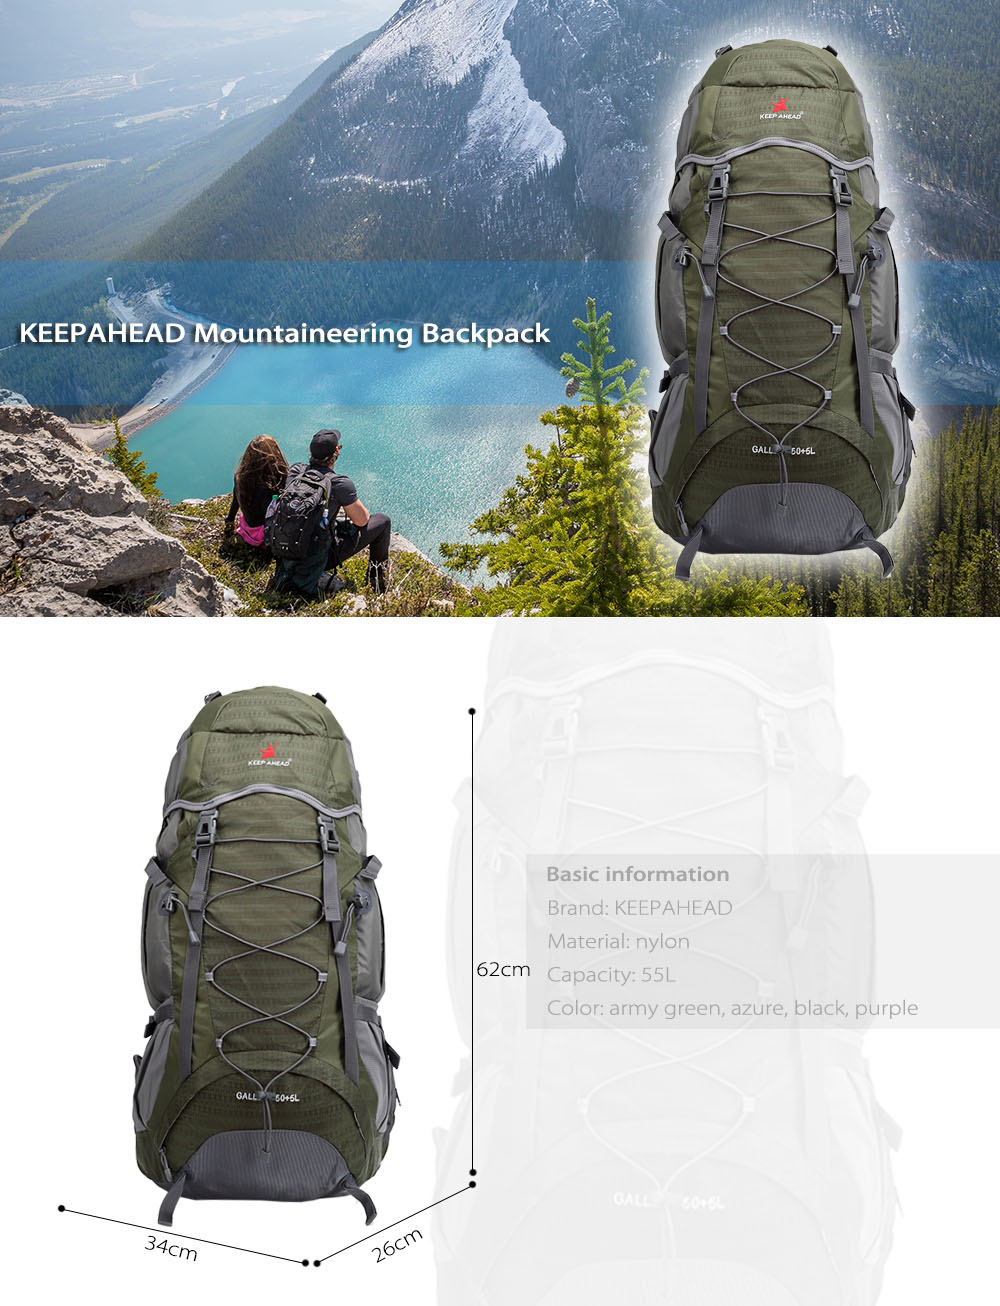 KEEPAHEAD 15081 Breathable Nylon 55L Mountaineering Backpack Bag with Fixed Belt